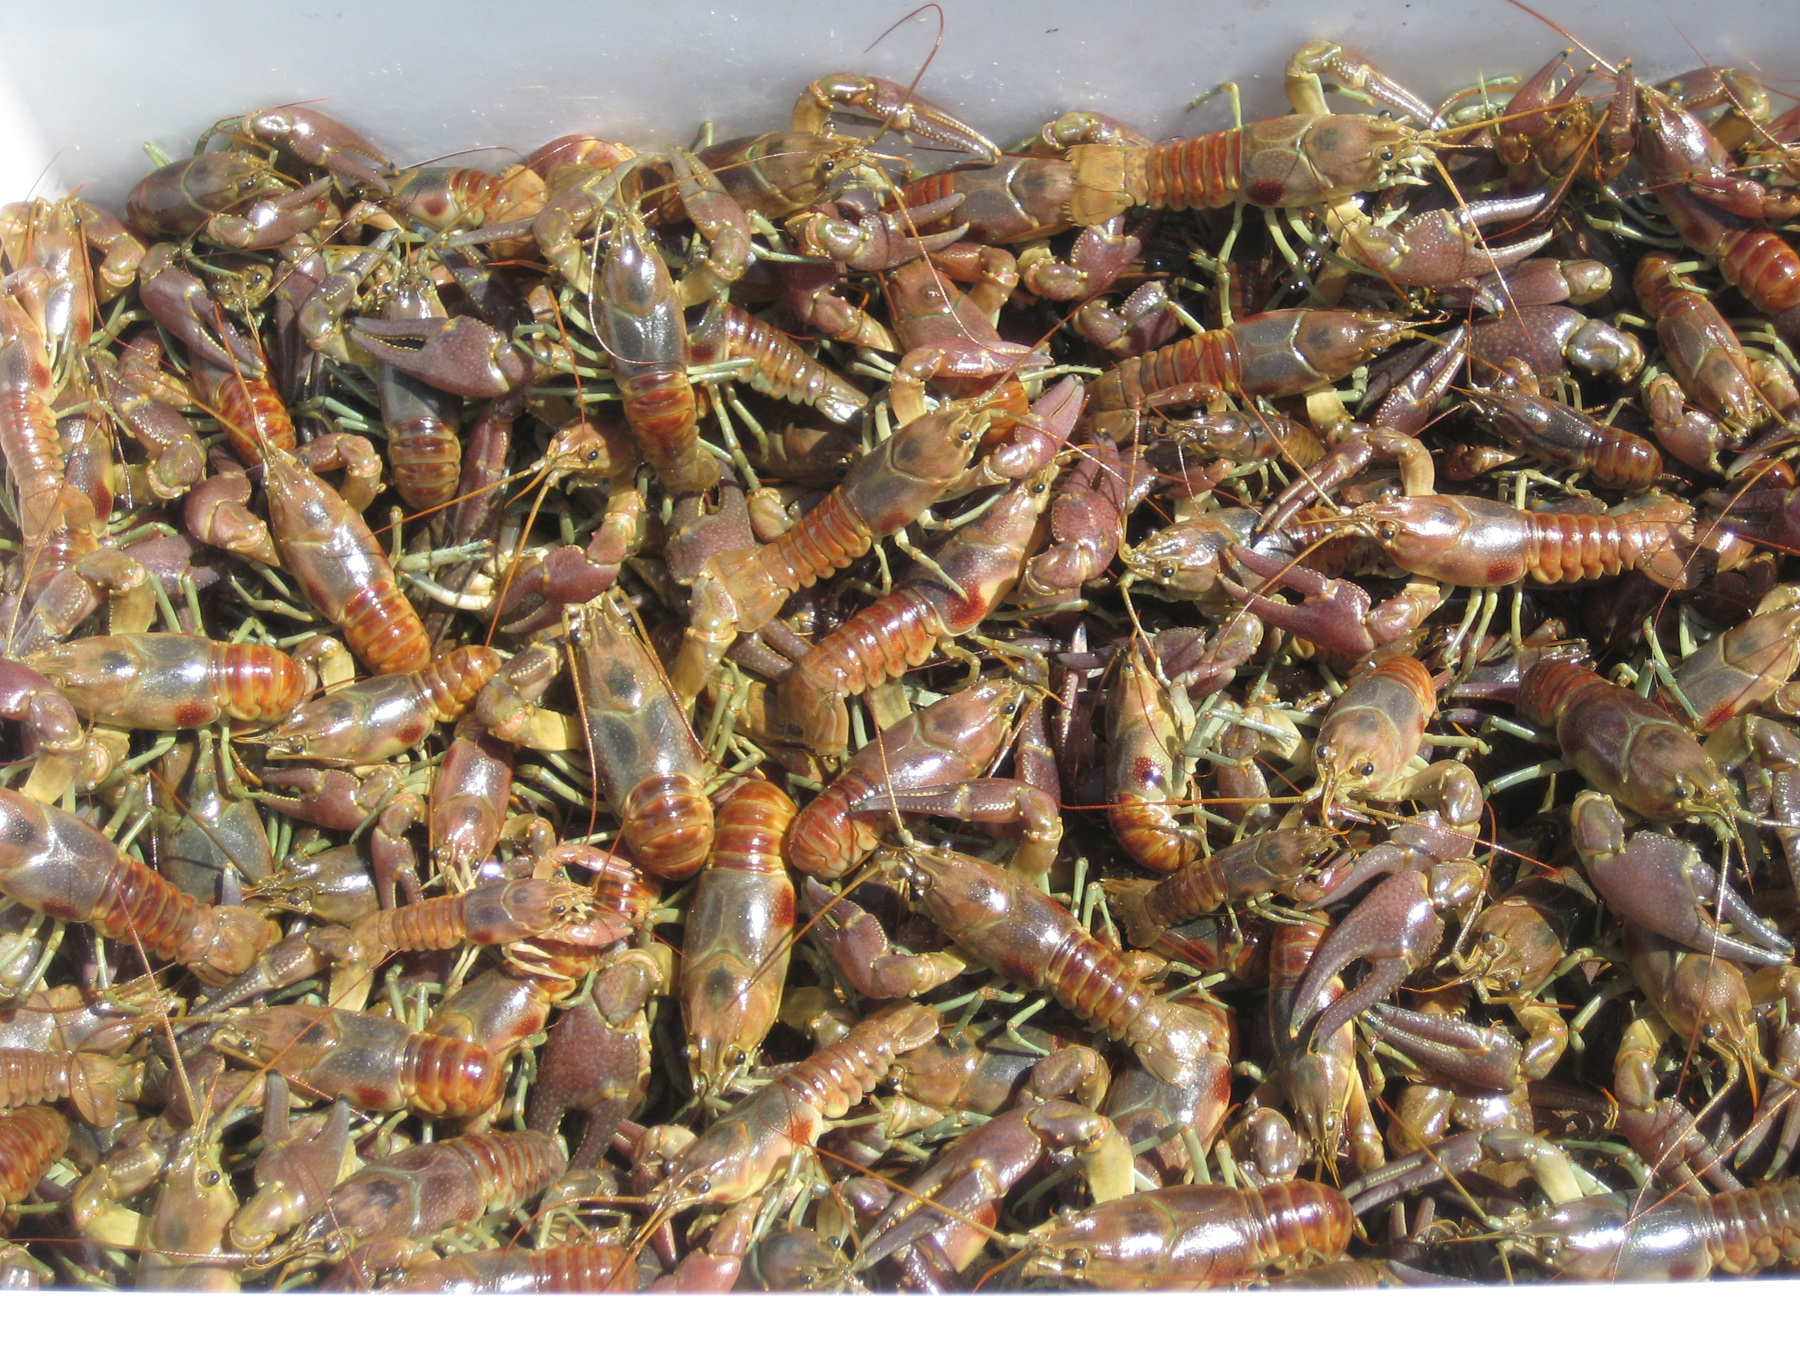 The invasive crayfish, Orconectes rusticus